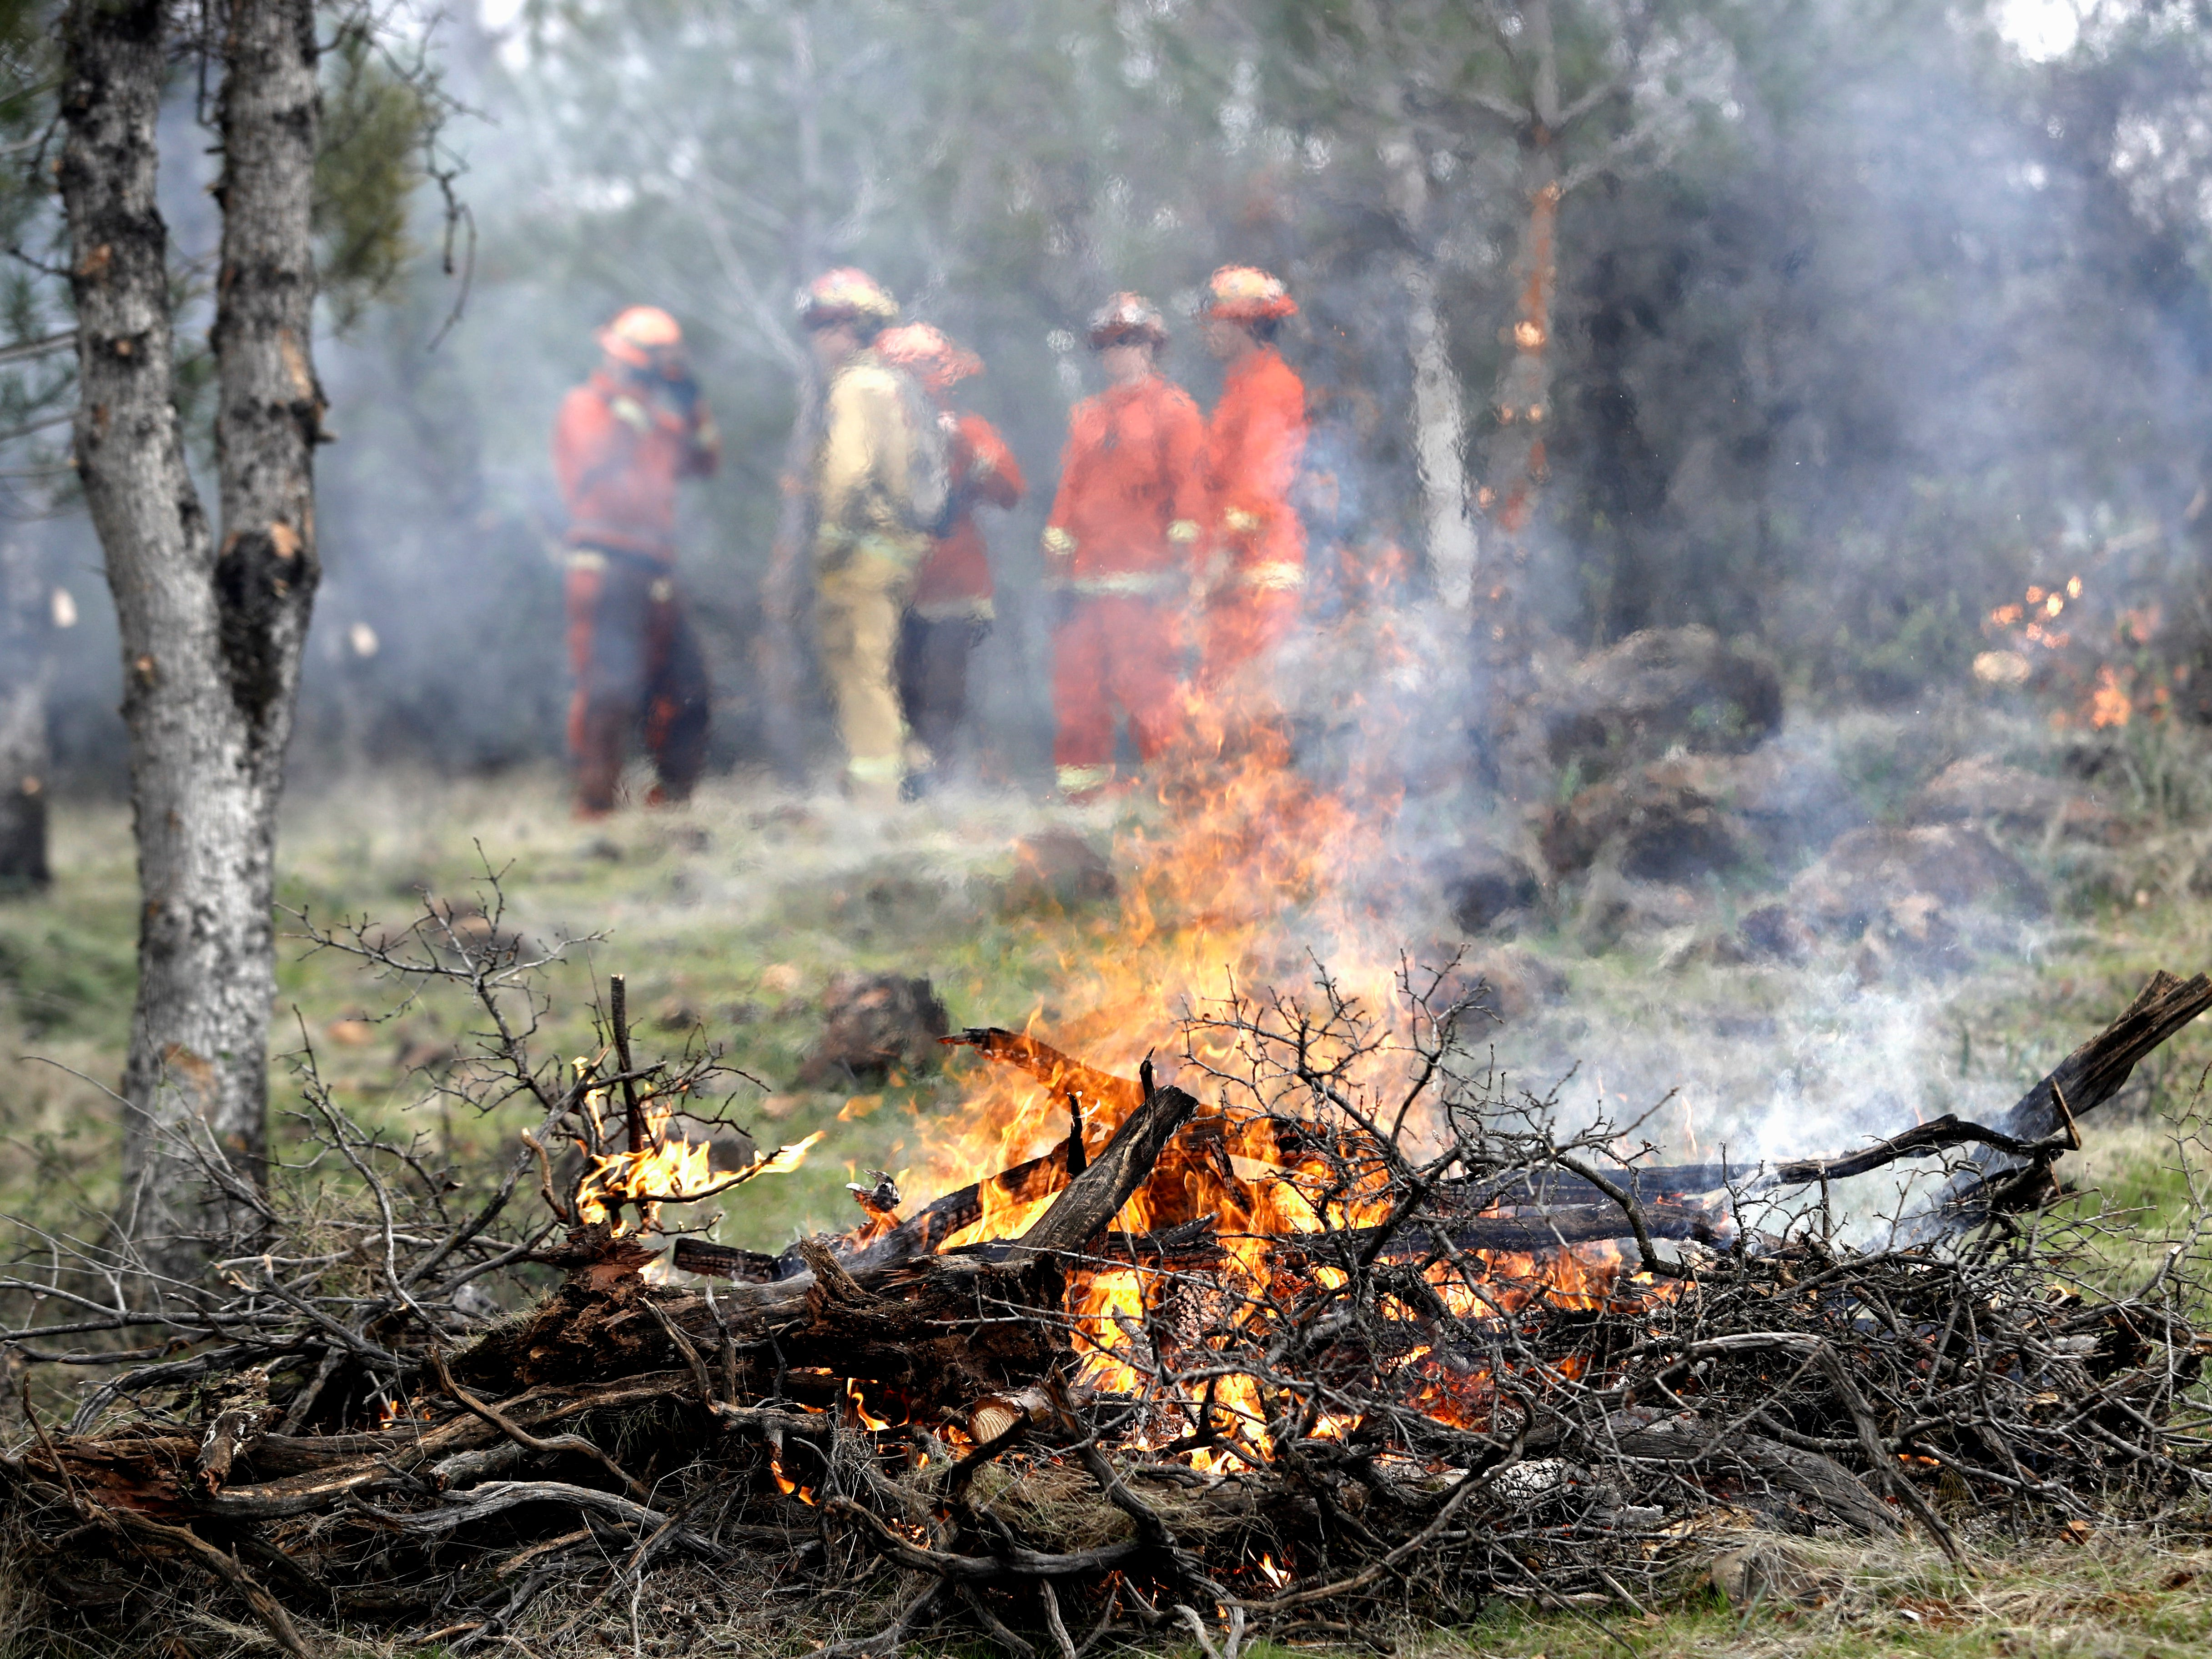 A crew from the Sugar Pine Conservation Camp burns brush and tree limbs to create a defensible space at a city-owned greenbelt between El Capitan Drive and Regent Avenue in west Redding on Feb. 6, 2019.